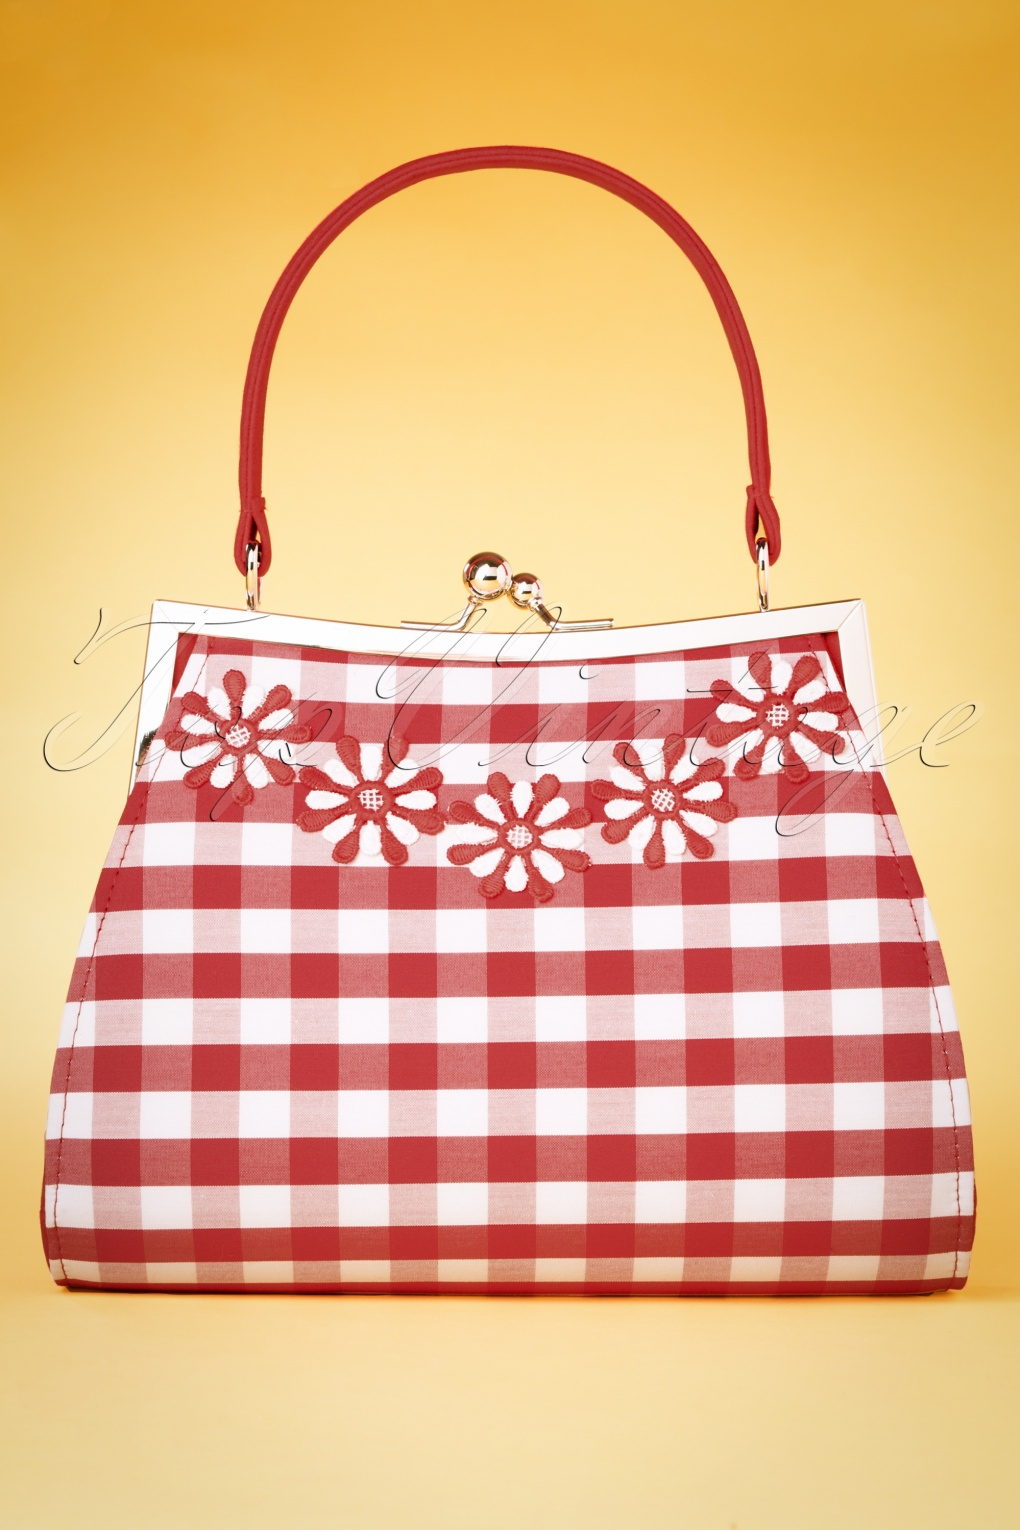 1950s Fashion History: Women's Clothing 60s Mendoza Check Handbag in Red £51.80 AT vintagedancer.com